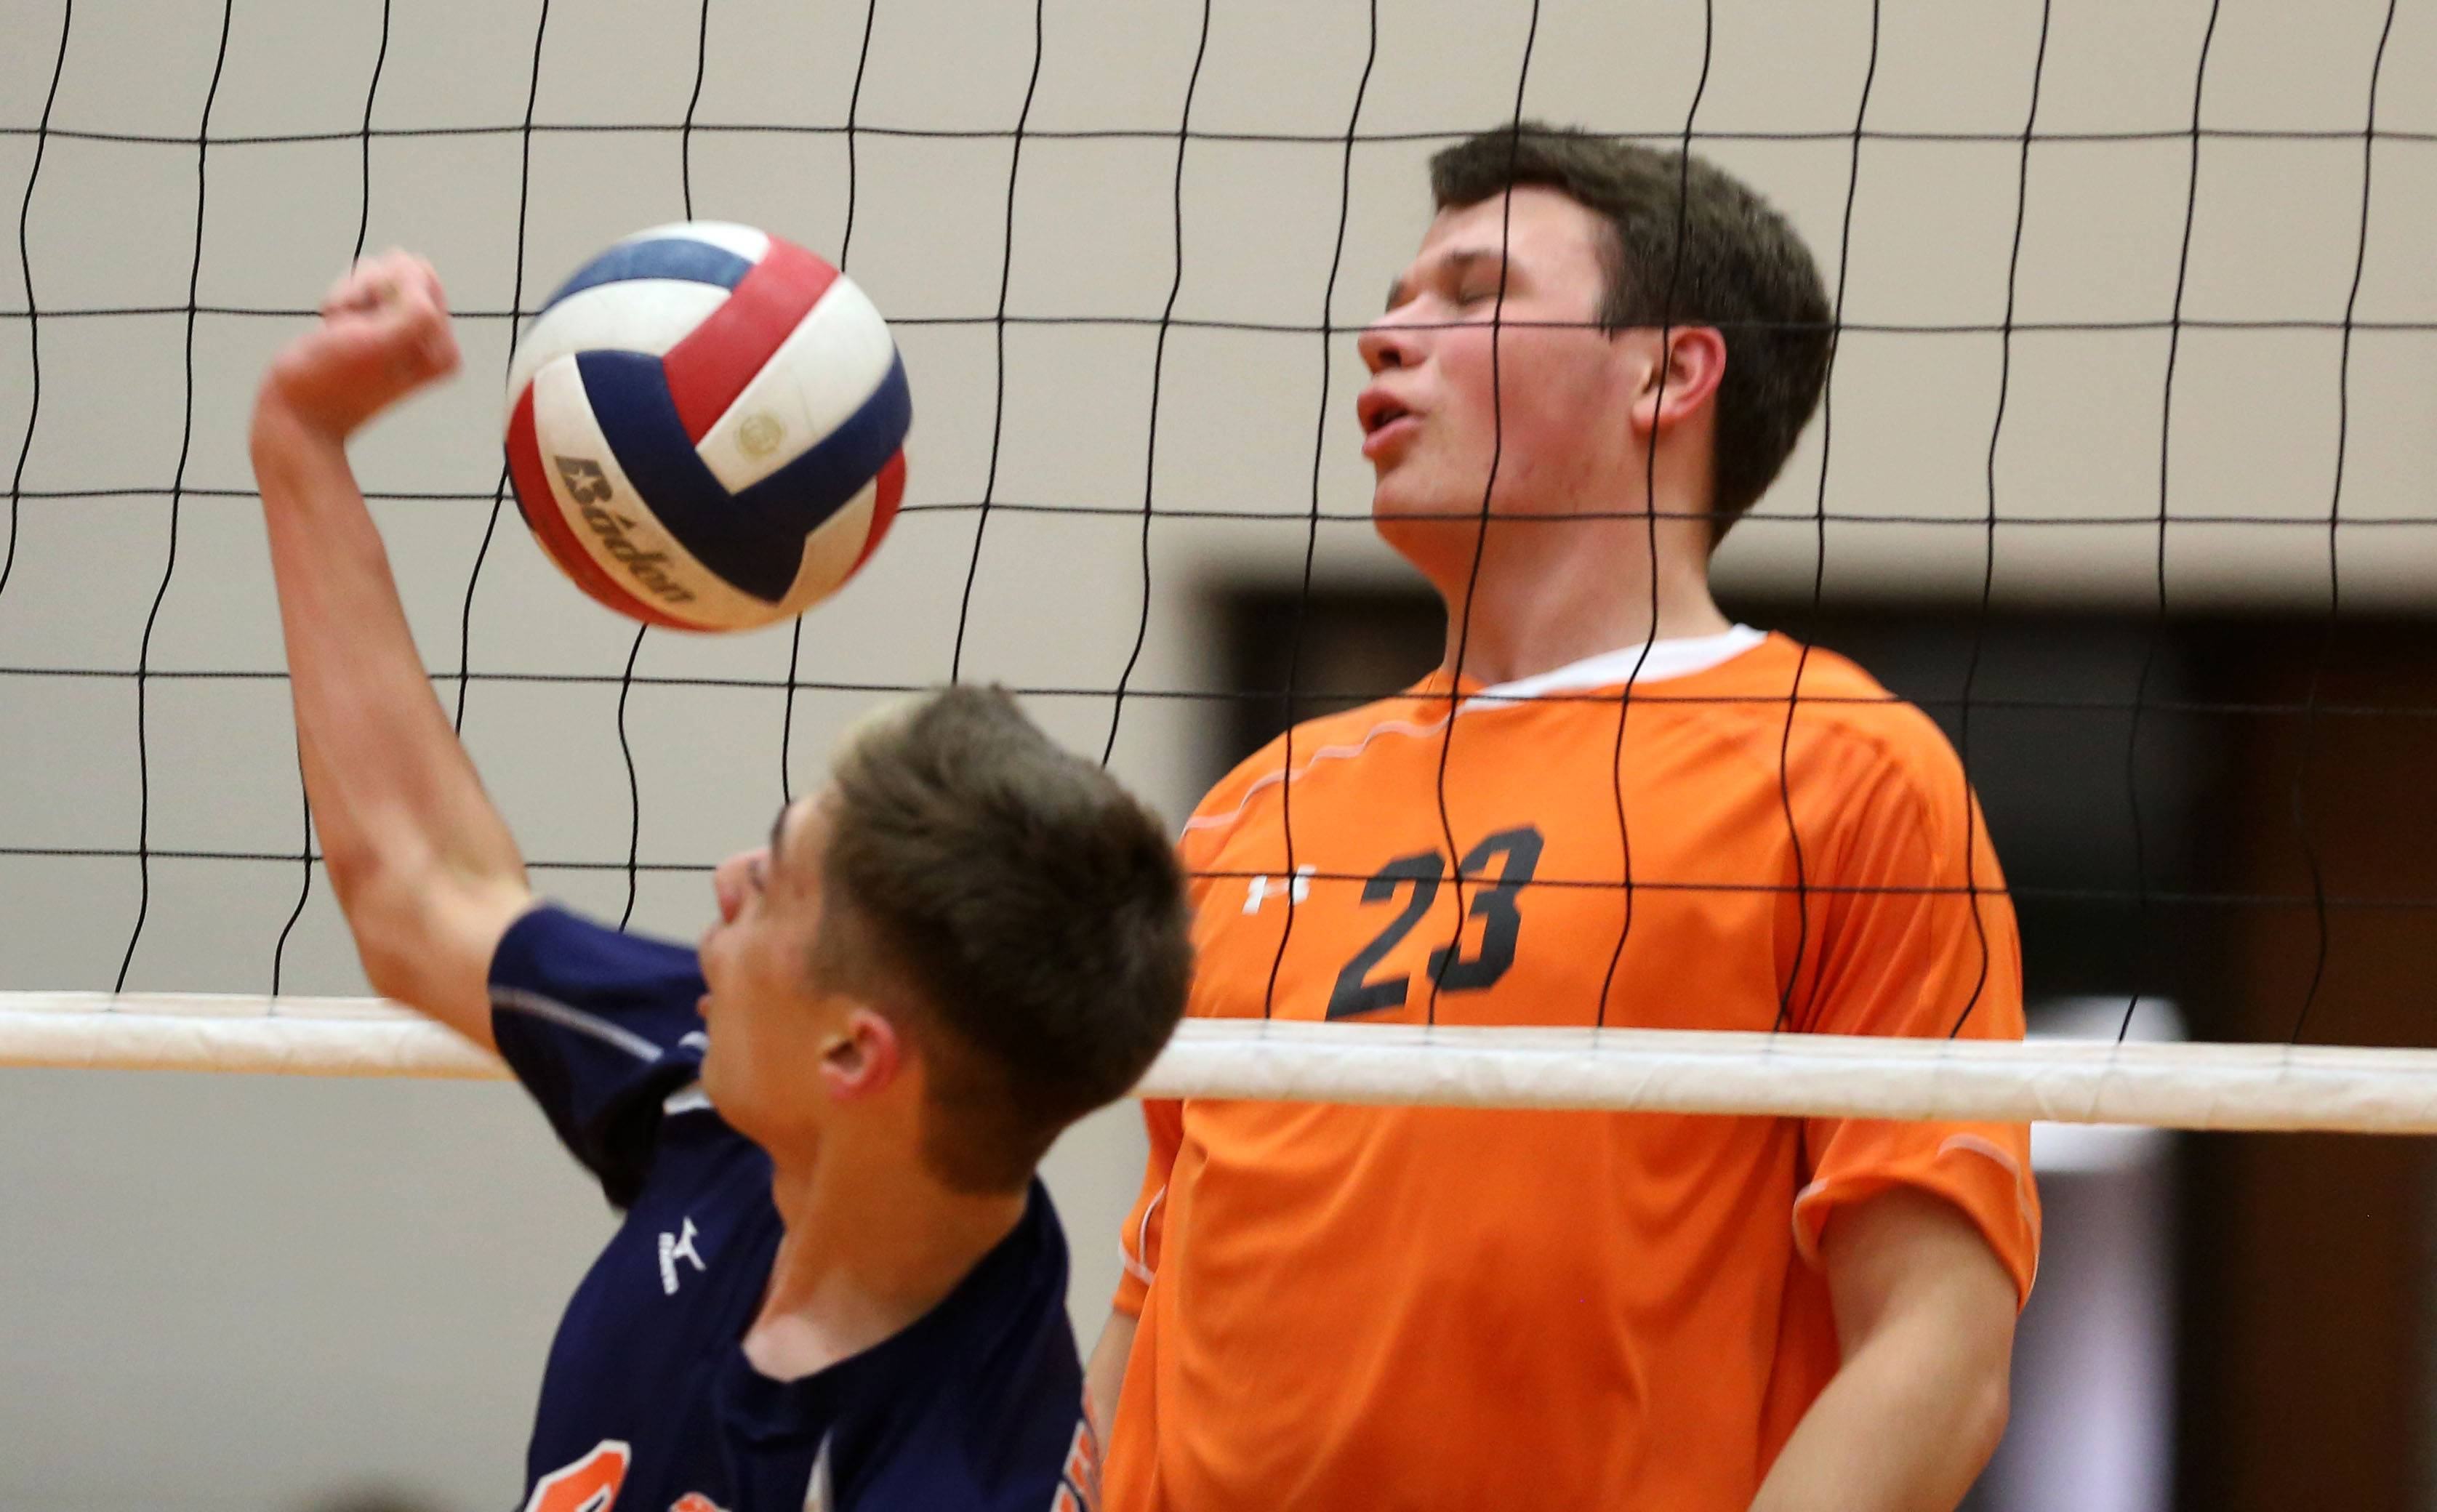 Naperville North's Jack Rothmund, left, battles Wheaton Warrenville South's Jerry Loar, right, during boys volleyball action.